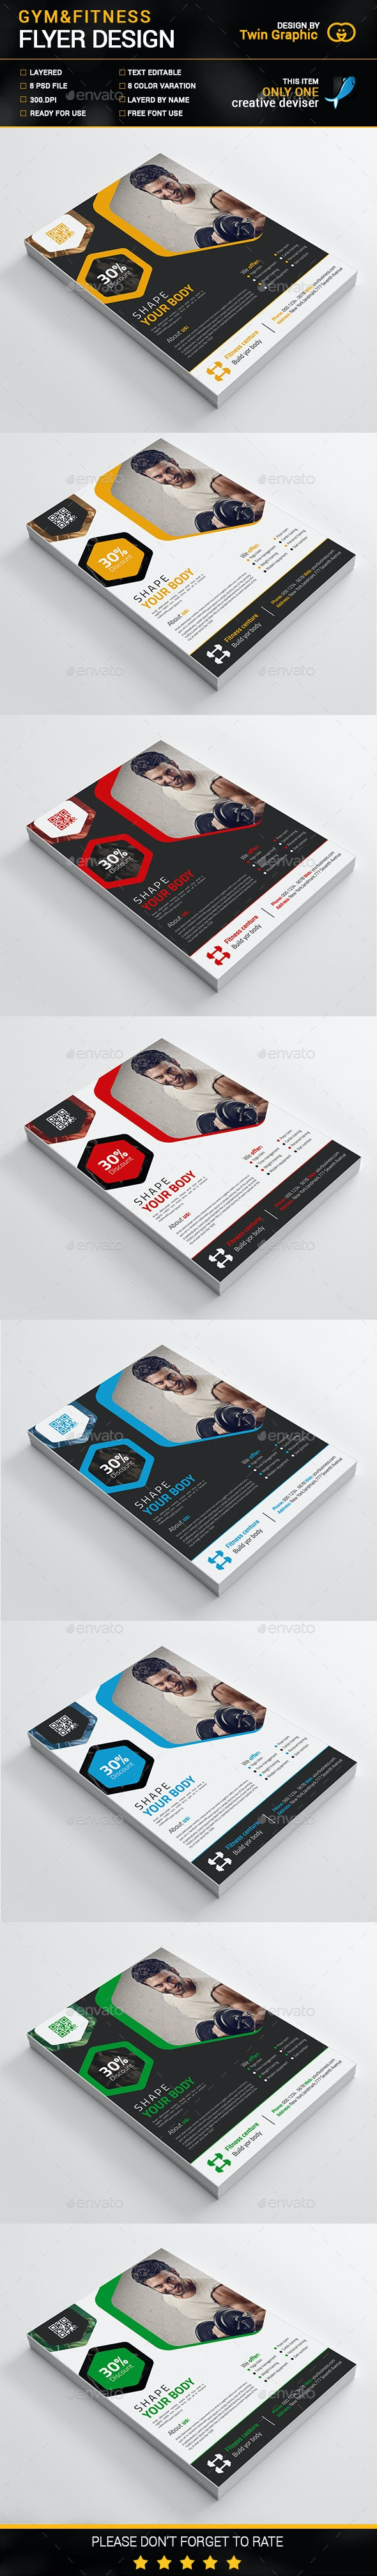 Gym&Fitness Flyer Design - Sports Events